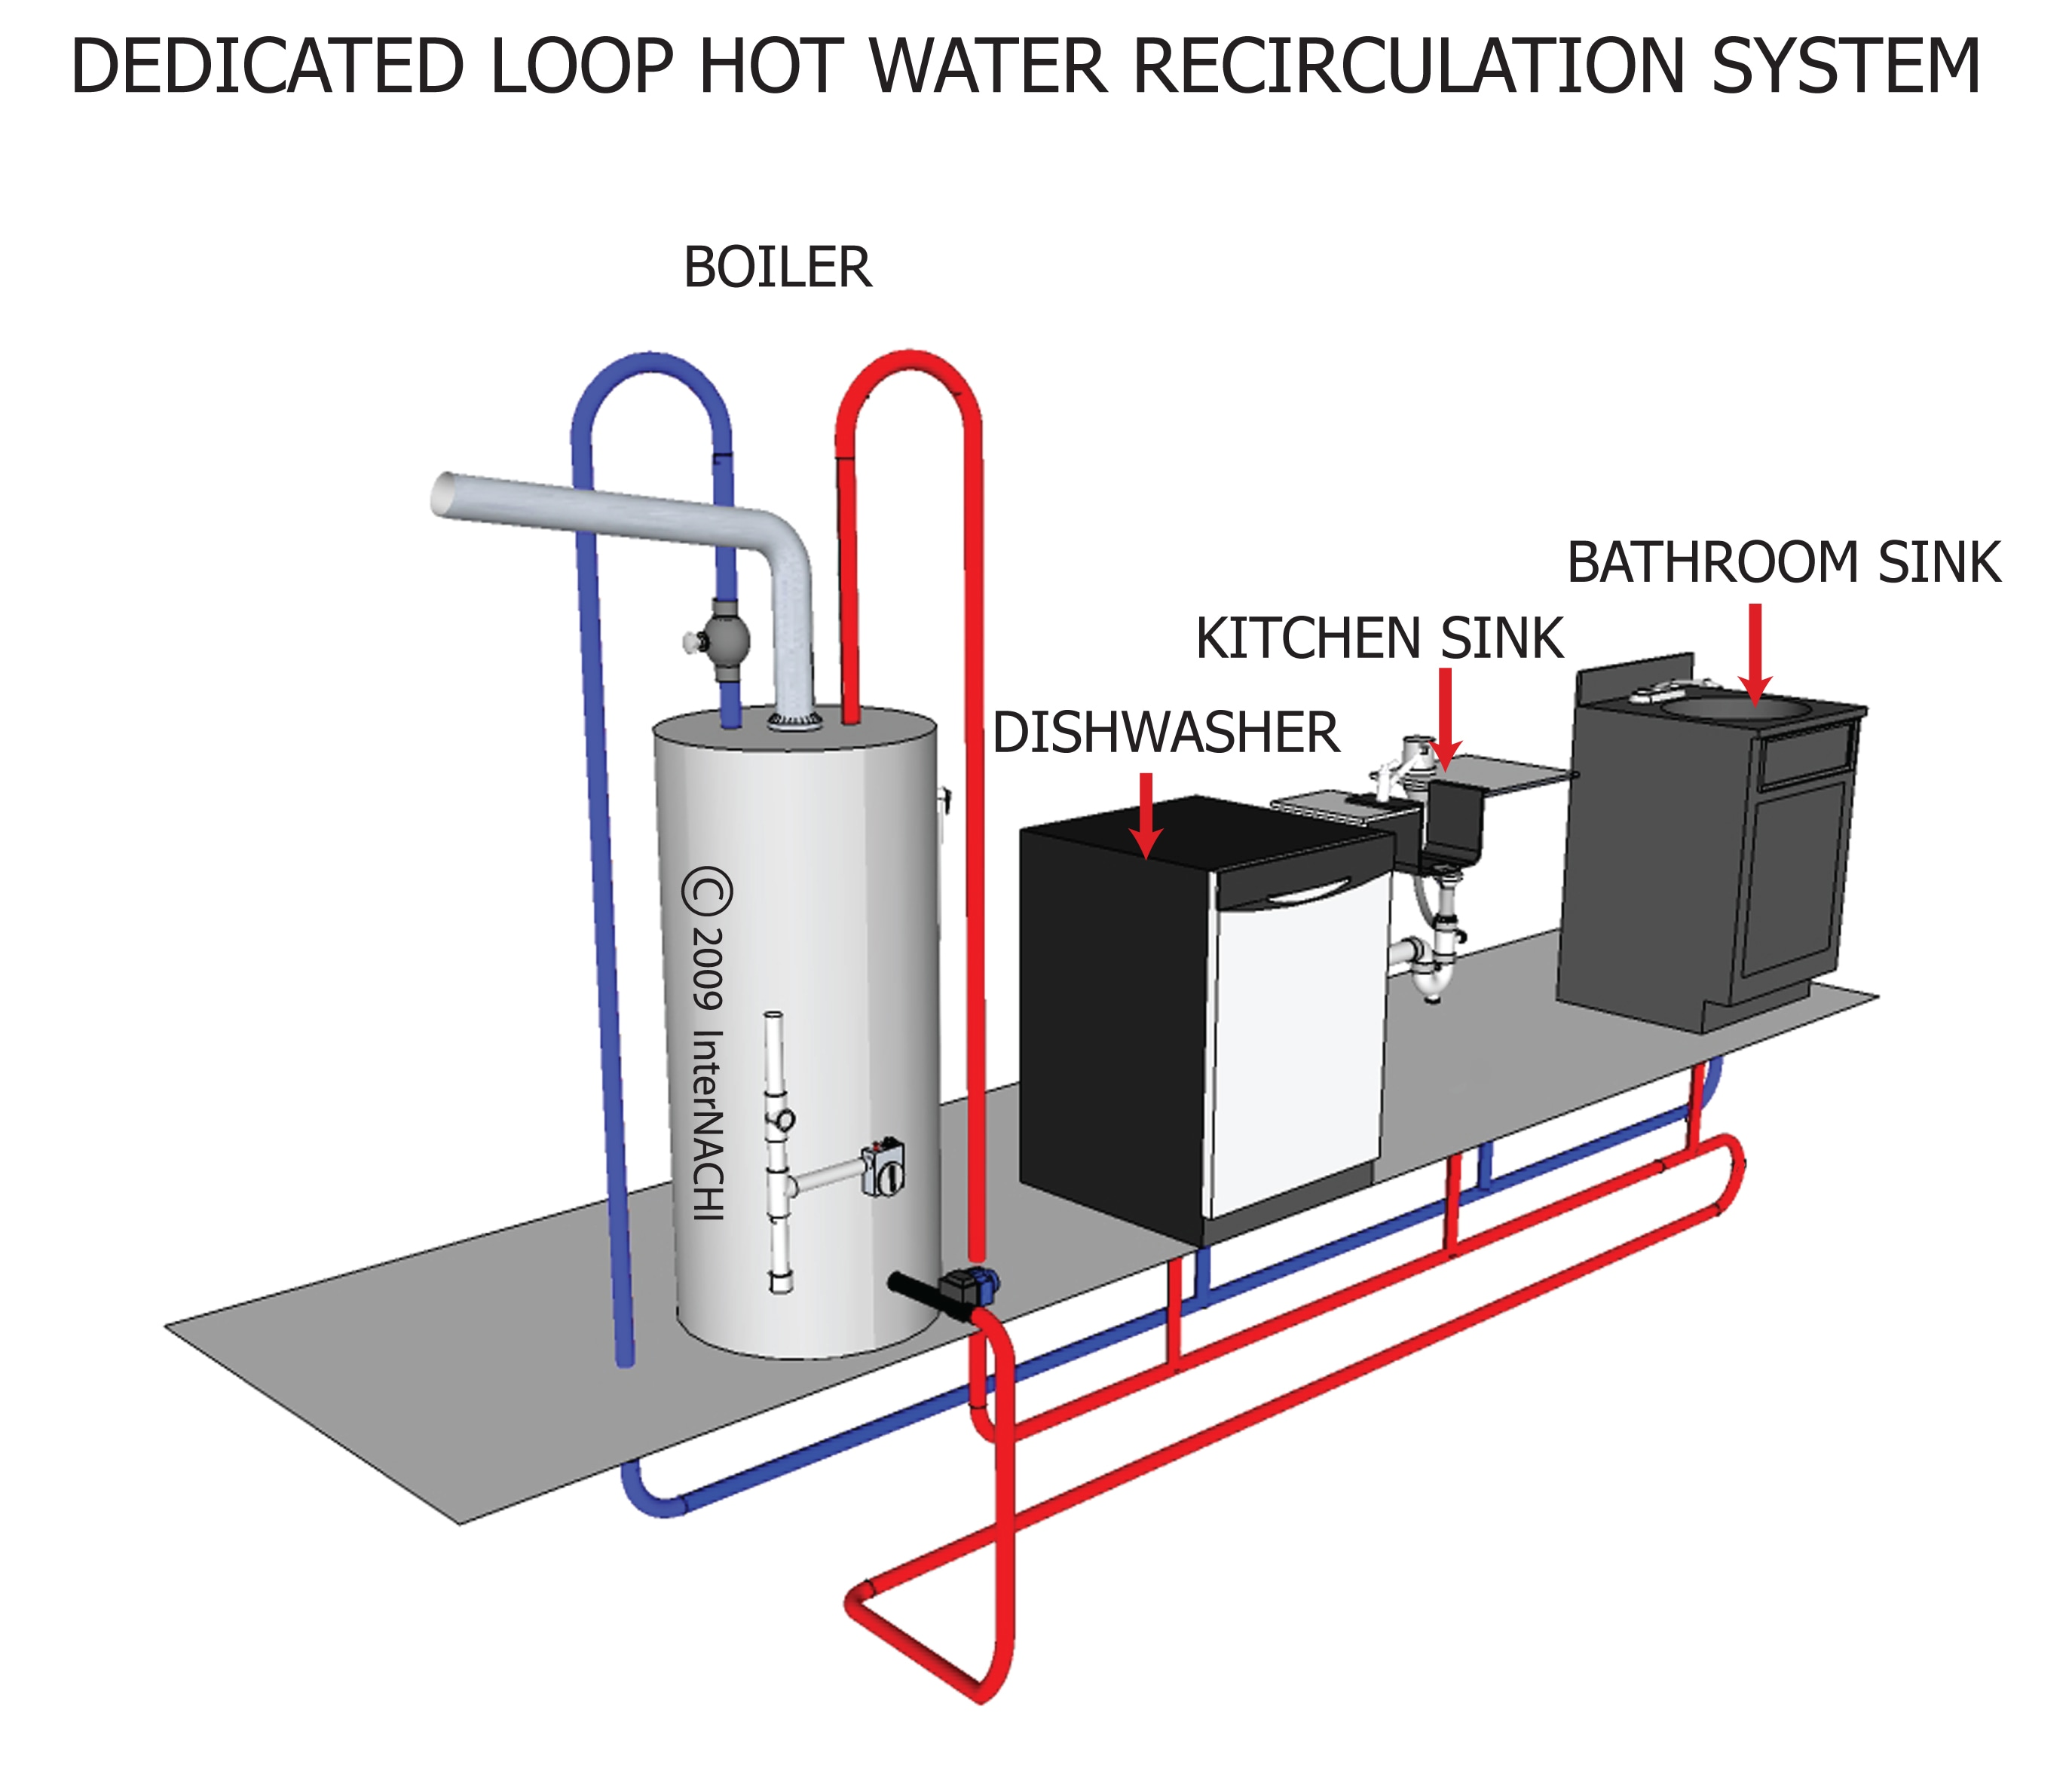 Dedicated Loop, Hot Water Recirculation System